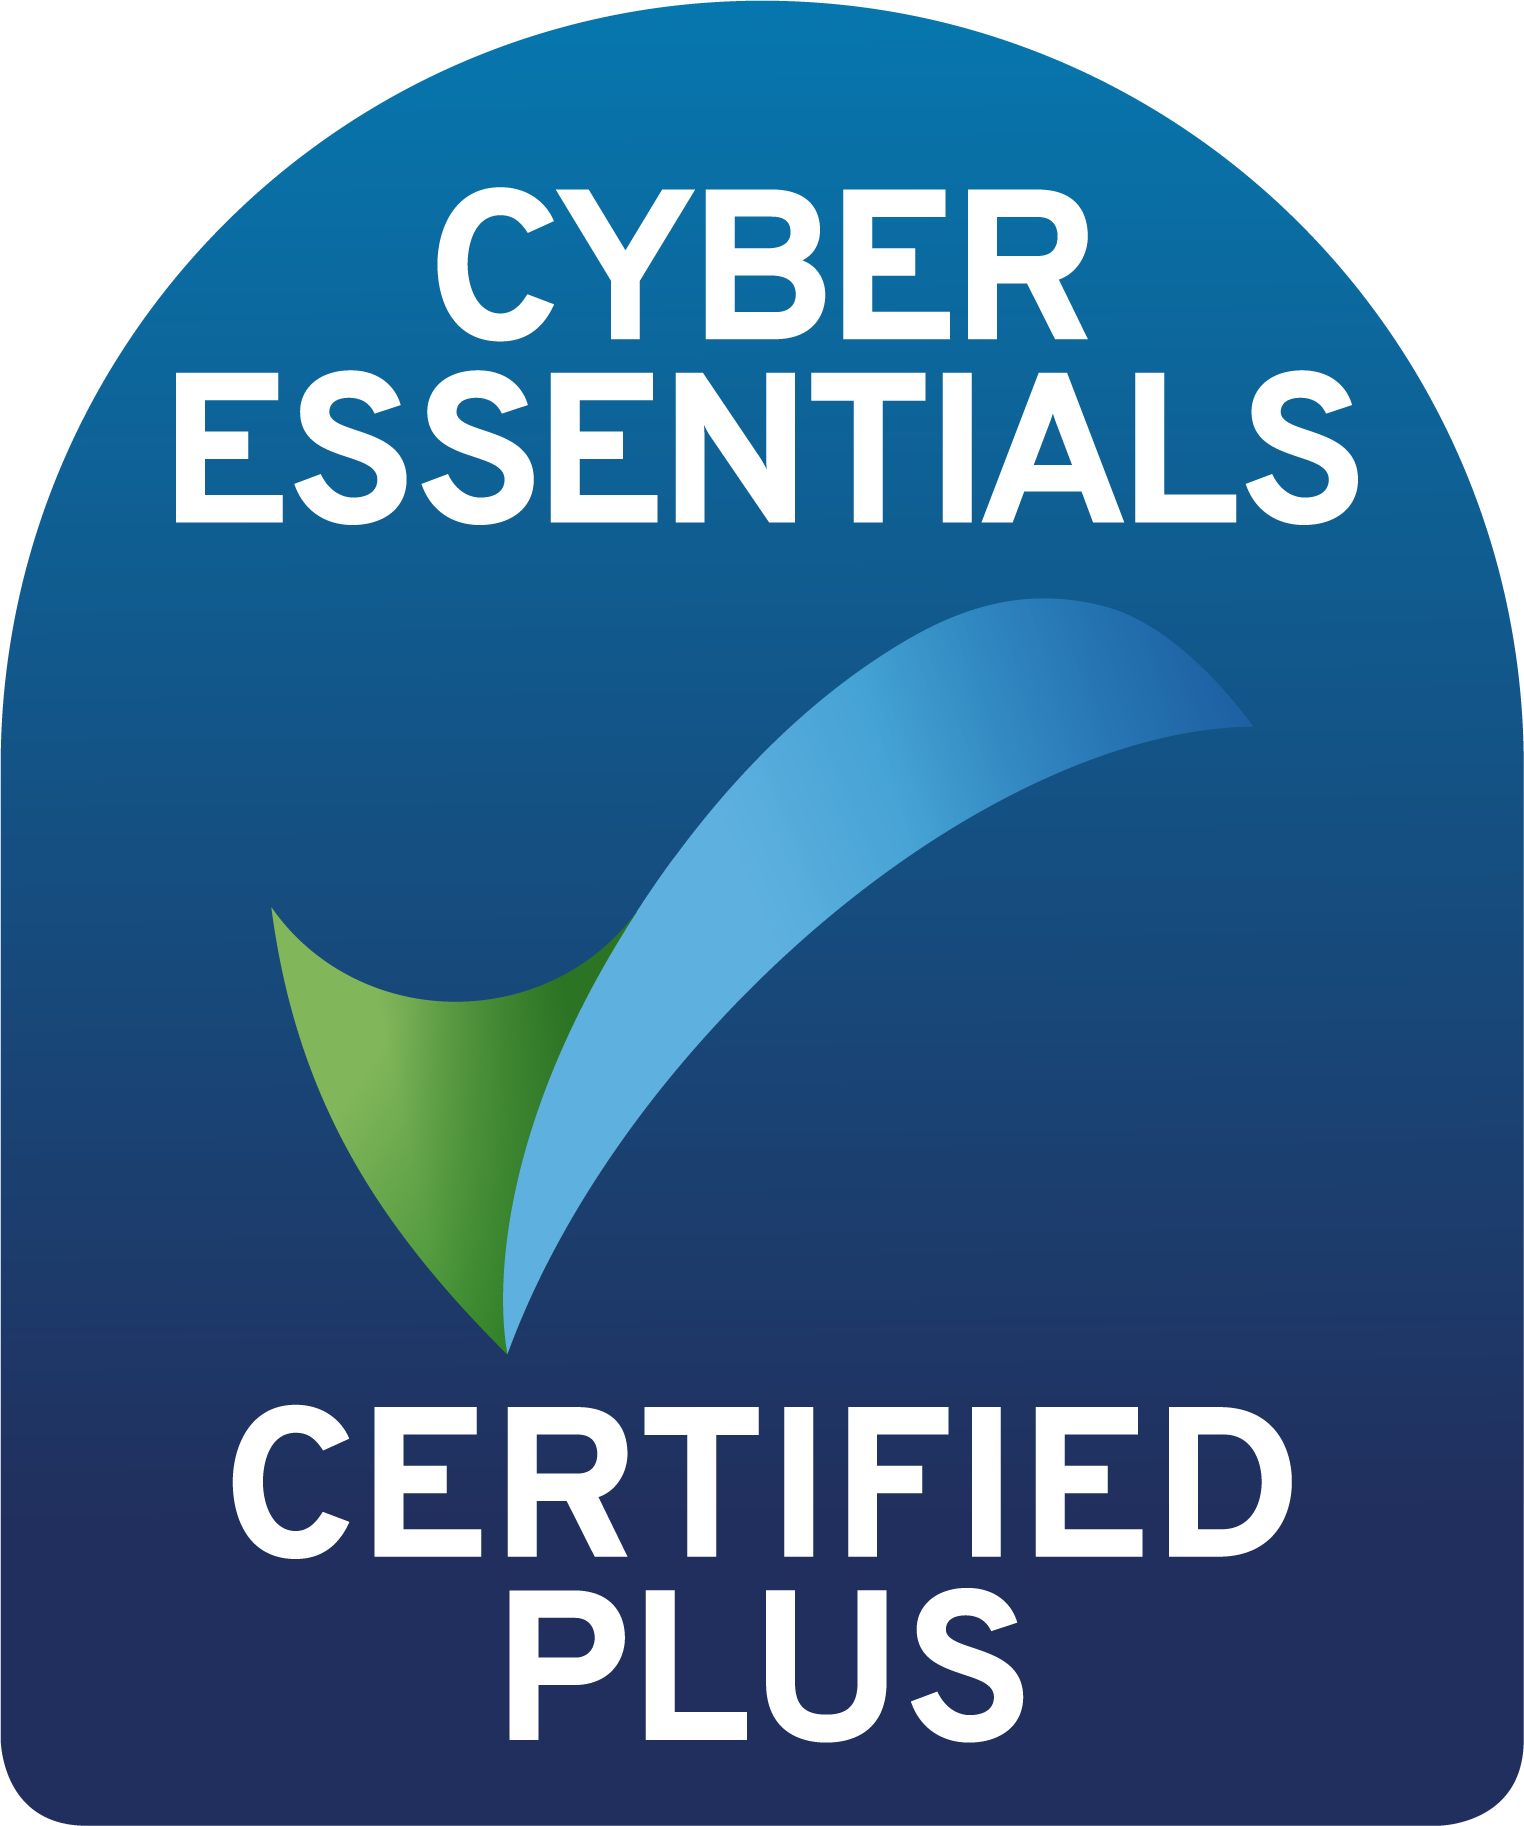 Cyber Essentials Plus accreditation